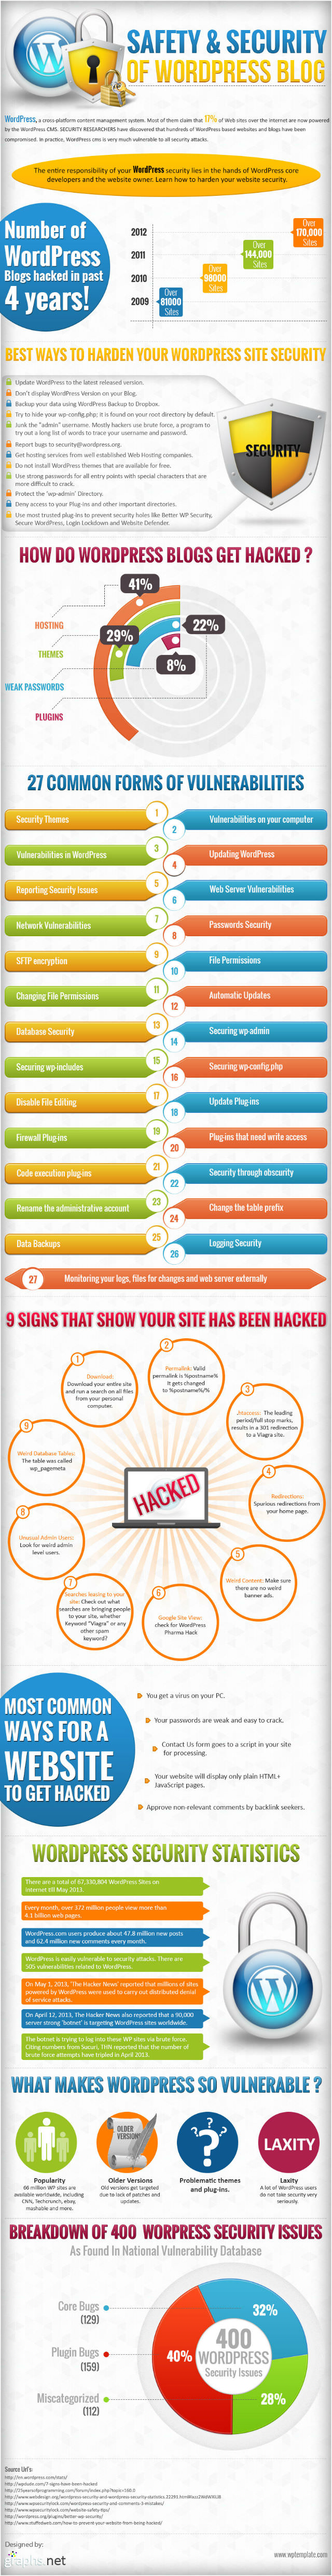 wp-security-infographic-large-w640